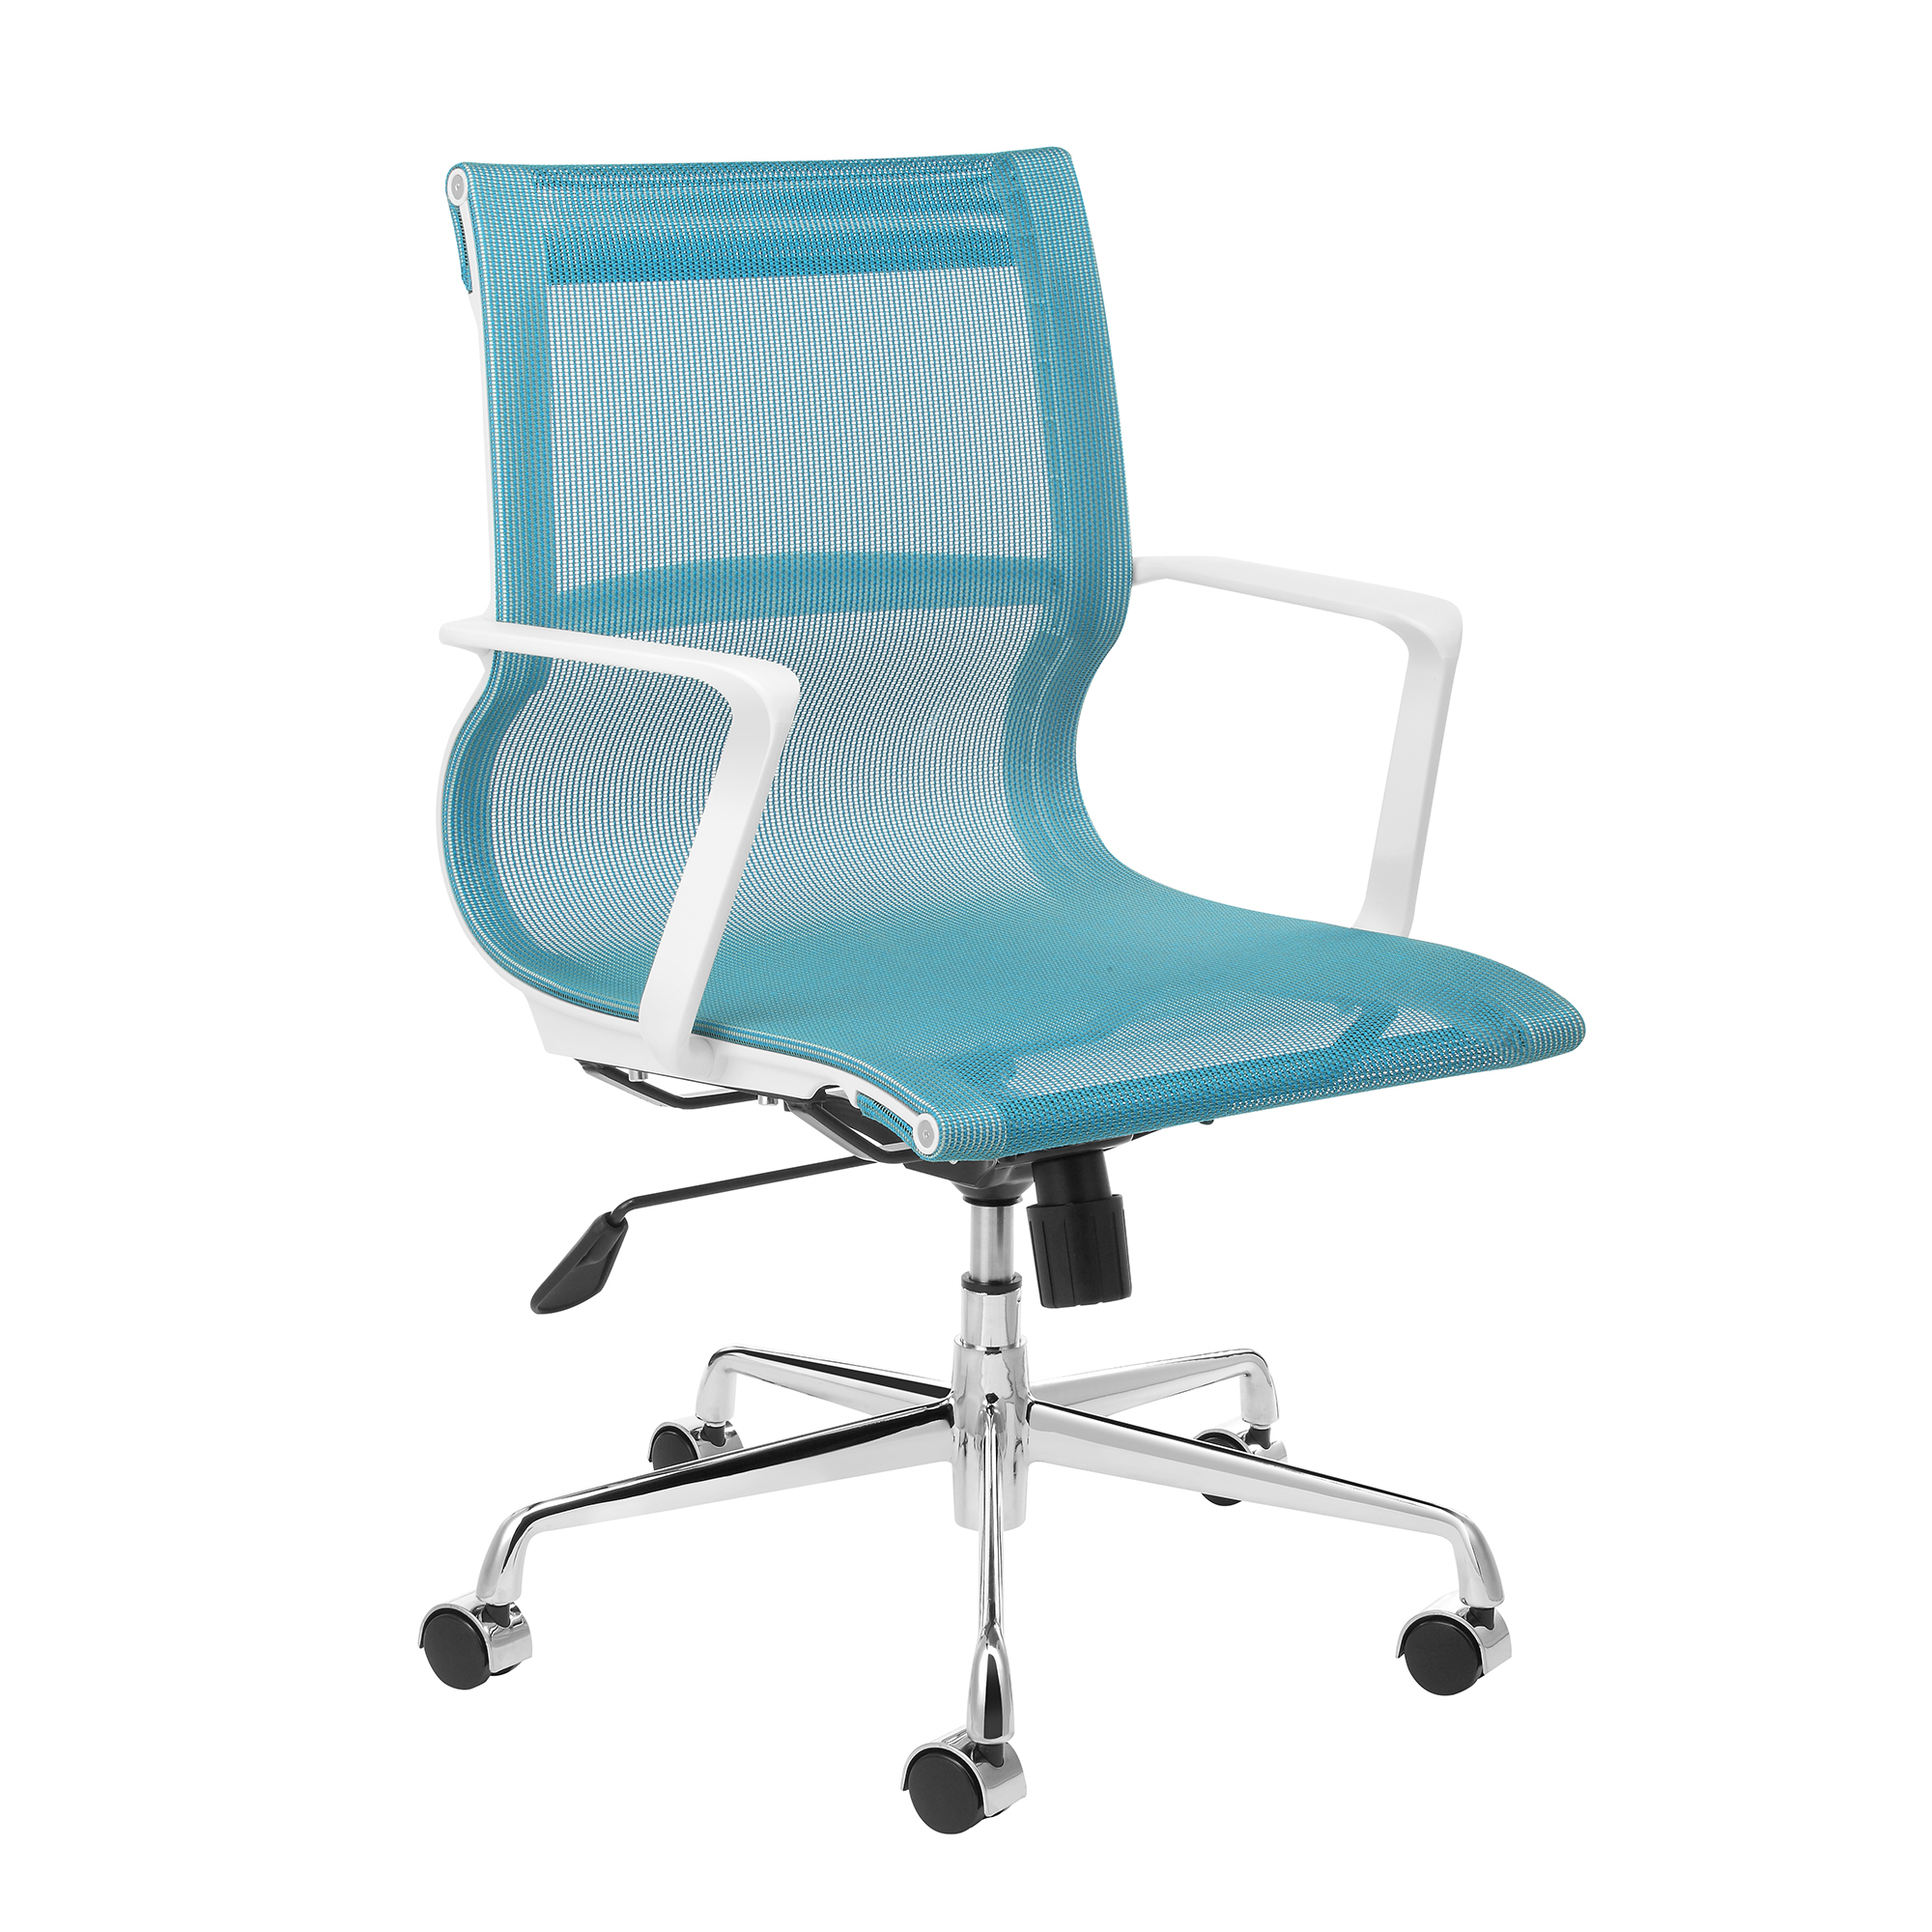 New Blue Management Premium Mesh Office Chair Milan Direct Office Chairs Ebay